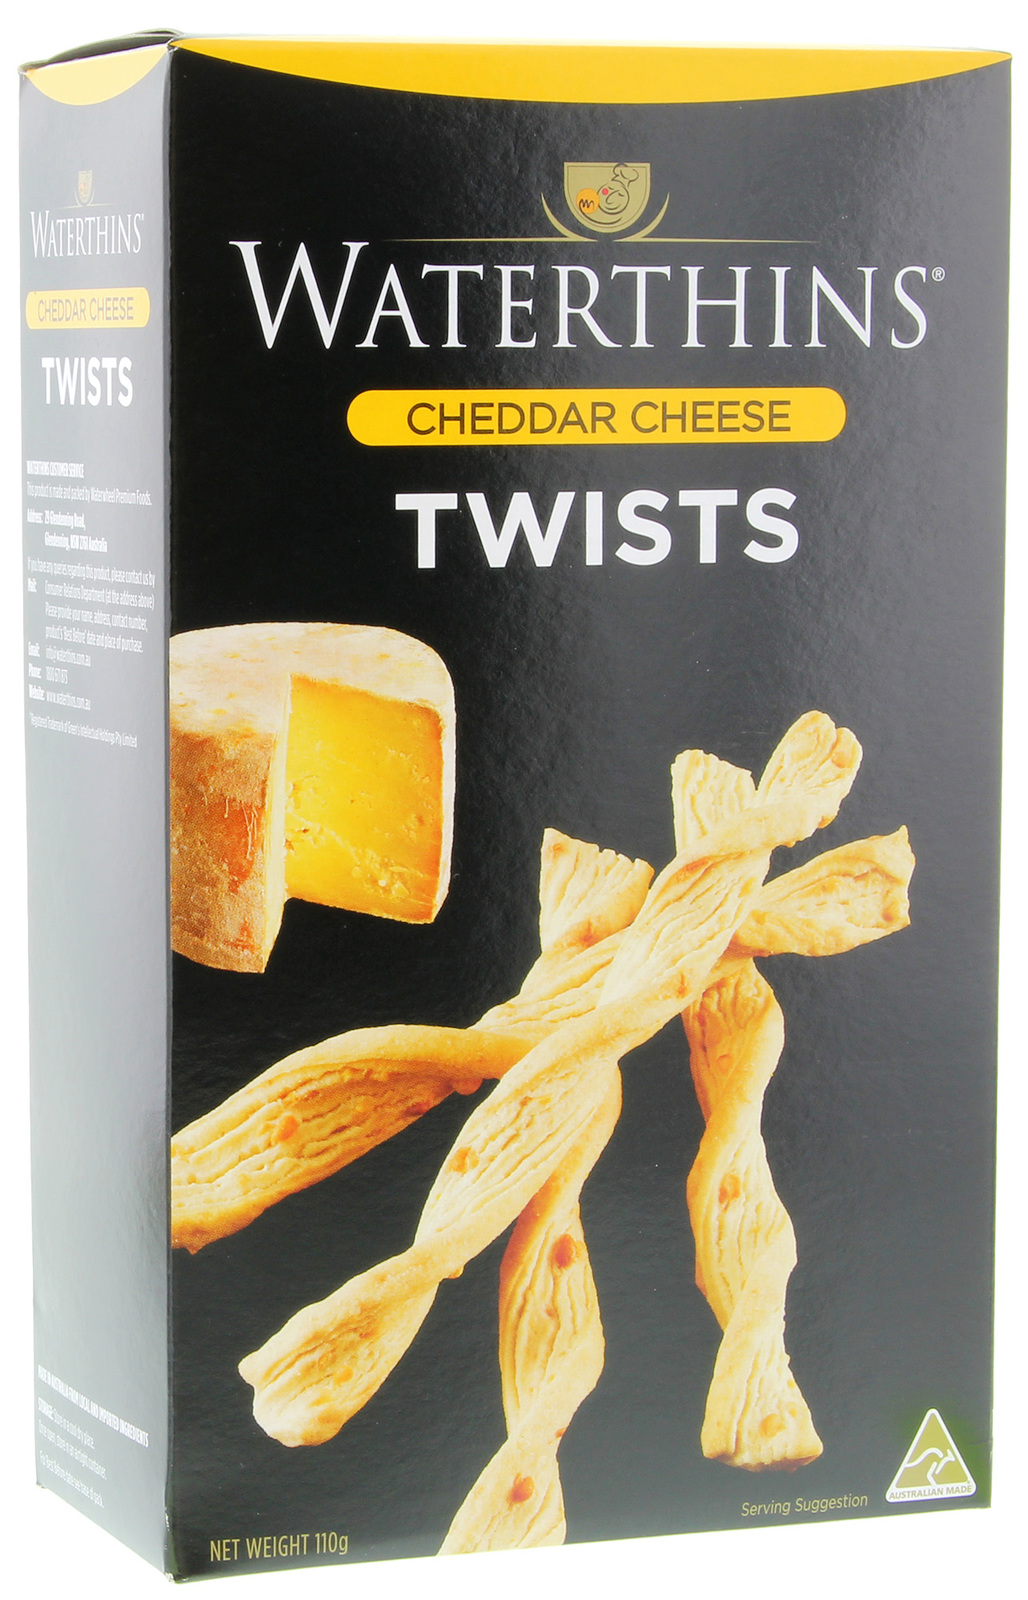 Waterthins Classic Cheddar Twists (110g) image